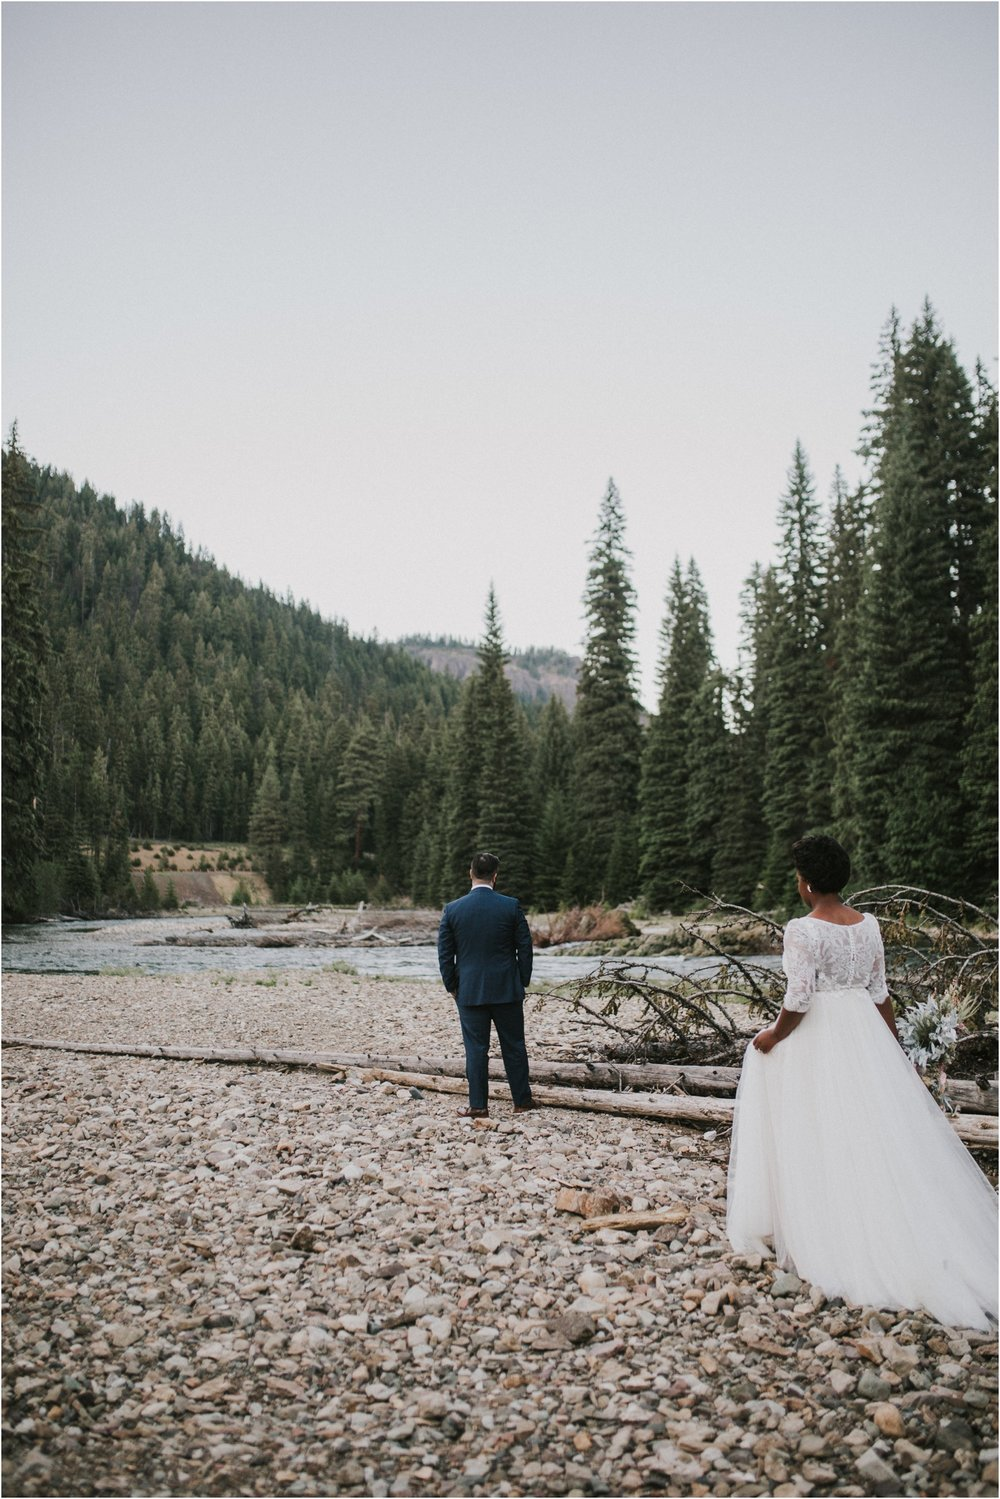 lovestoriesco-amber-phinisee-seattle-mount-rainier-elopement_0077.jpg